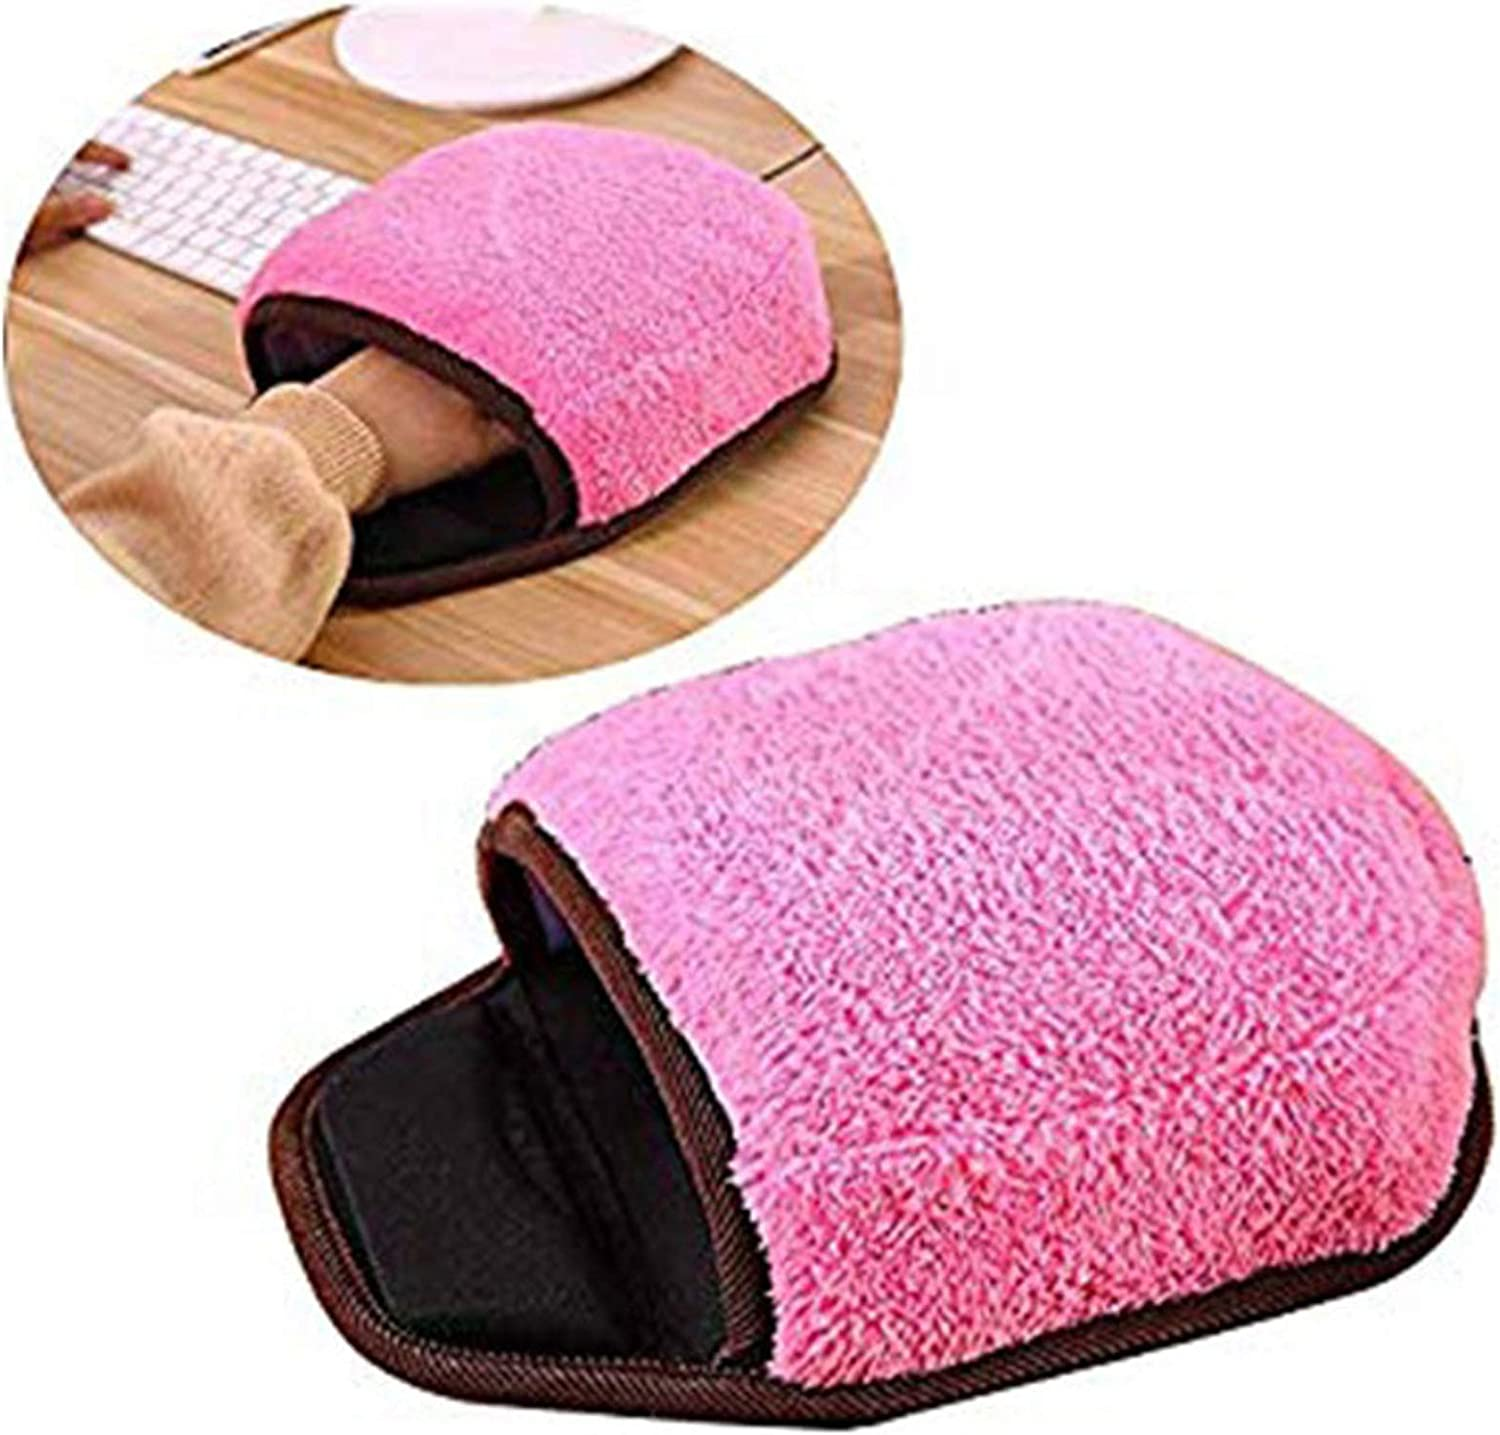 Universal USB Heated Mouse Pad Mat Winter Warm Plush Electric Hand Warmer with Wrist Guard(Pink)